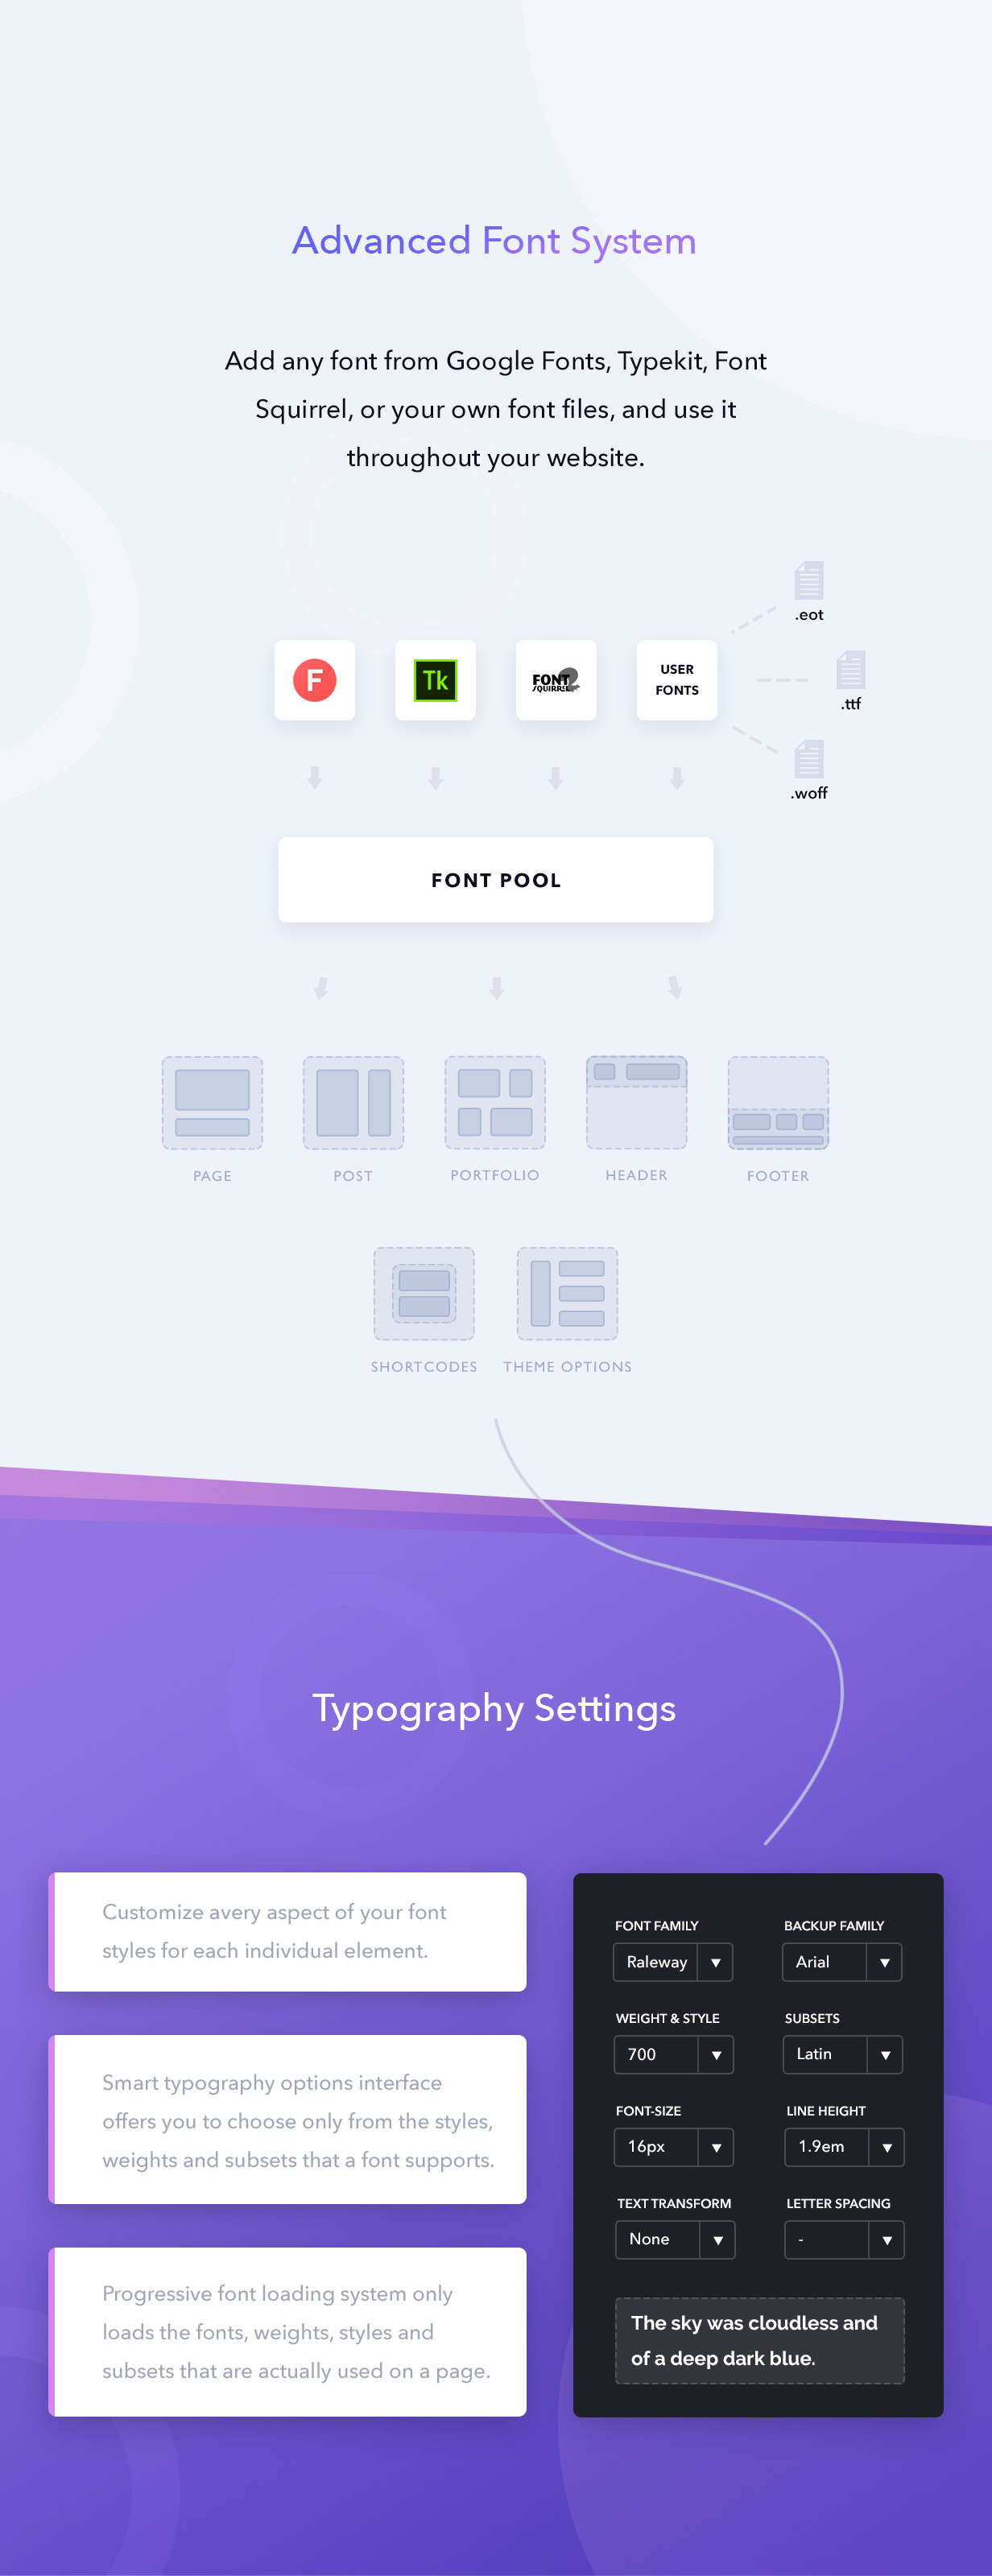 Advanced font system and typography